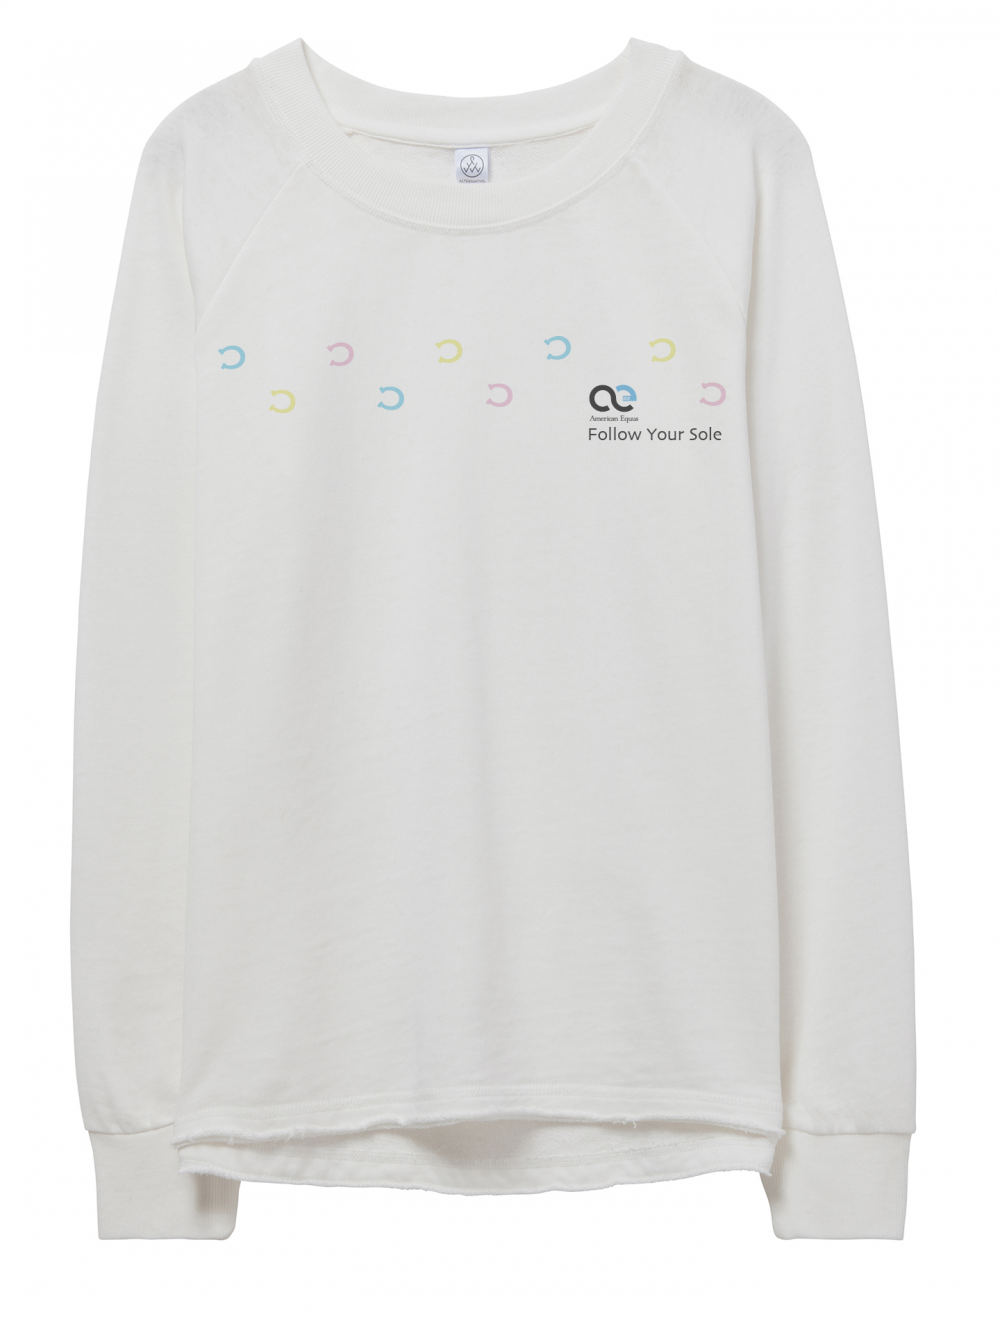 American Equus Lazy Day Sweatshirt Follow Your Sole - Ivory